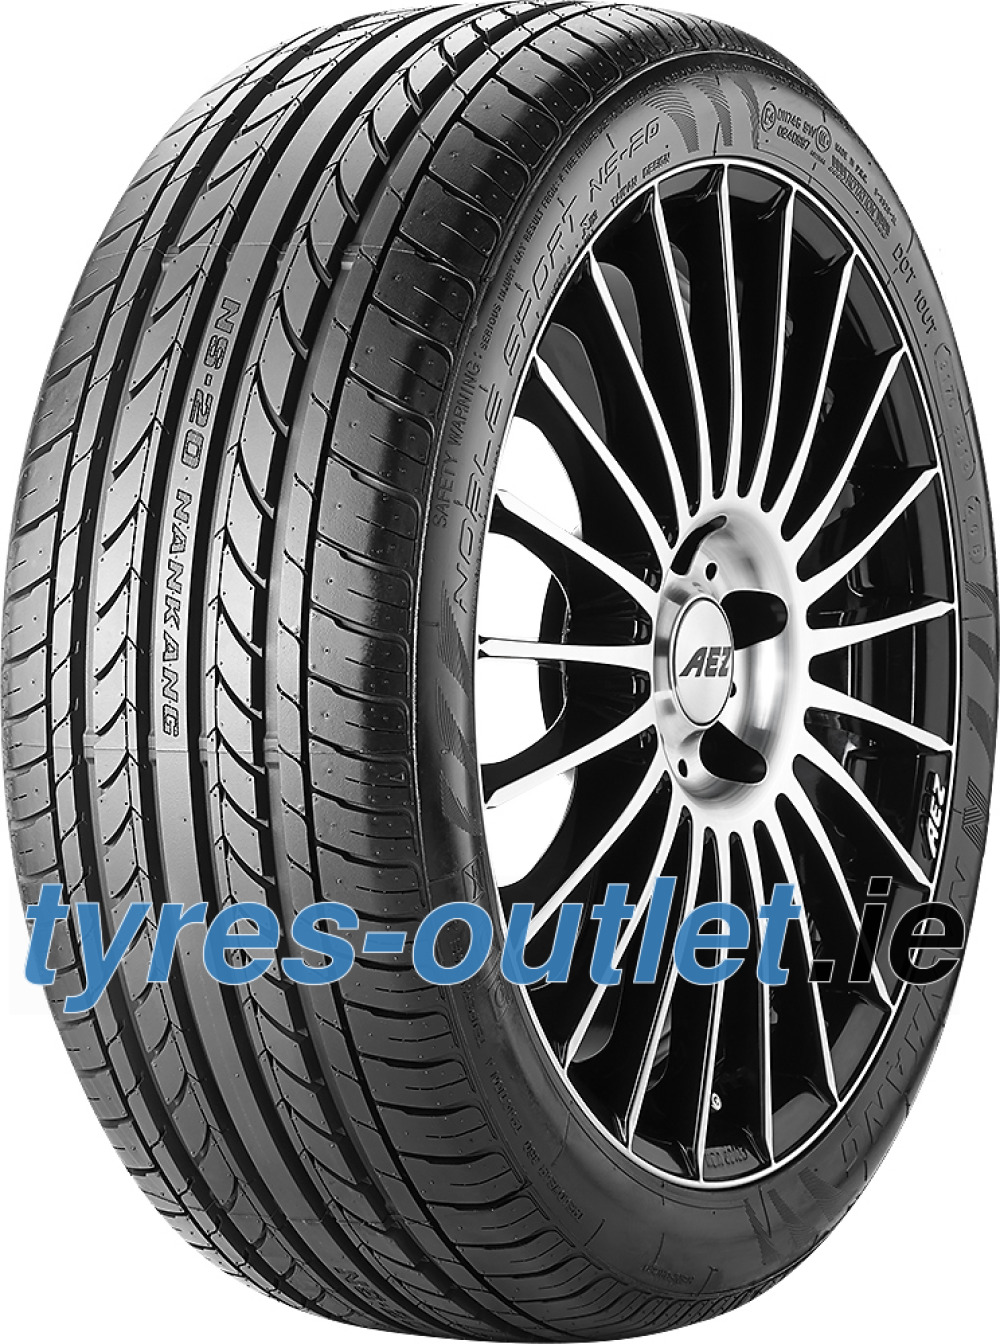 Nankang Noble Sport NS-20 ( 255/30 ZR20 92Y XL with rim protection (MFS) )